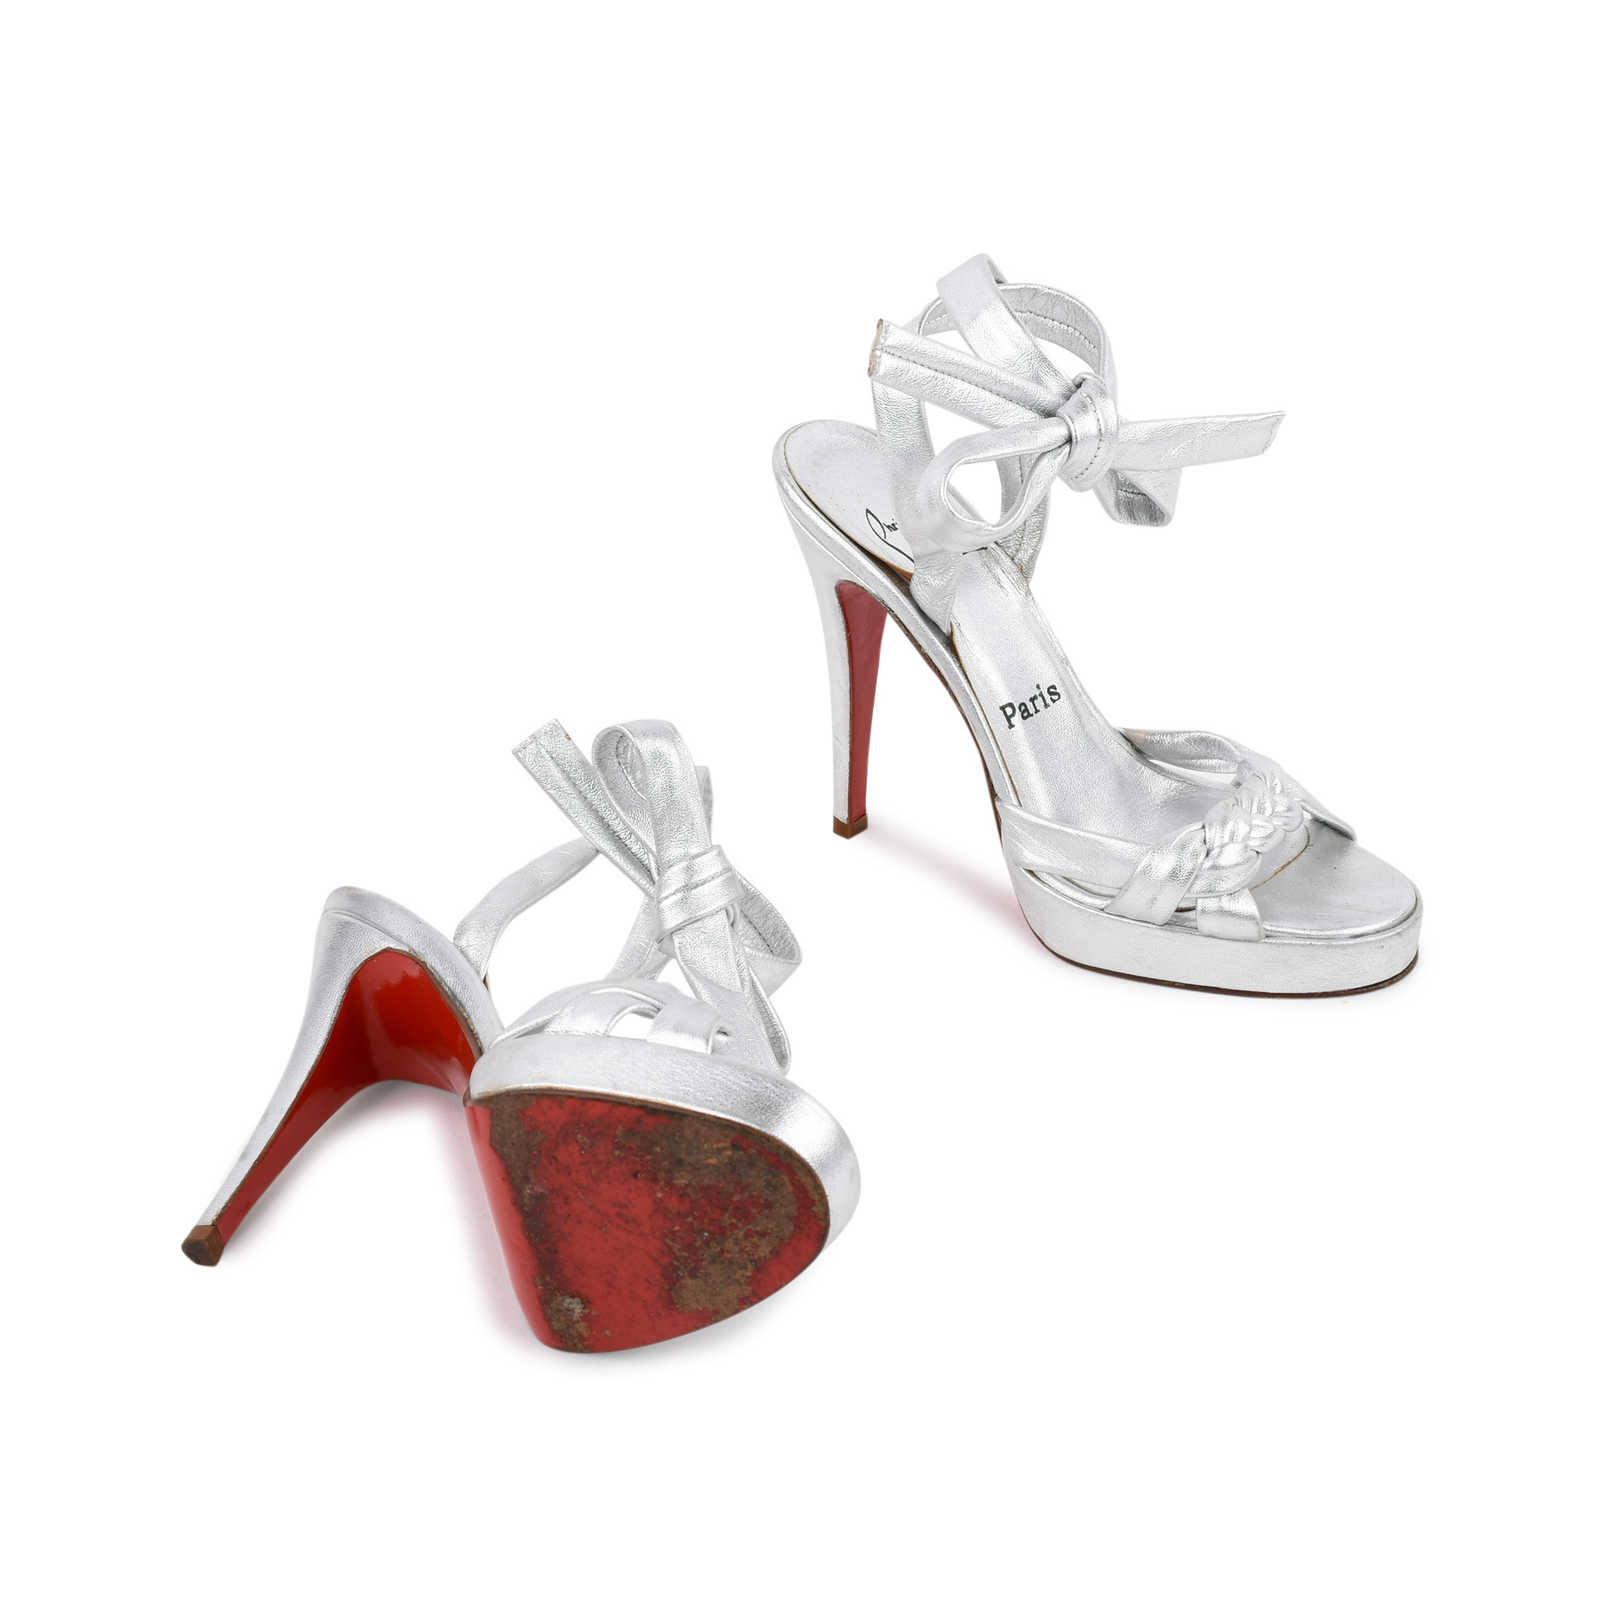 2bdaa6519d9bf8 ... Authentic Second Hand Christian Louboutin Silver Braided Tie Sandals  (PSS-080-00245) ...